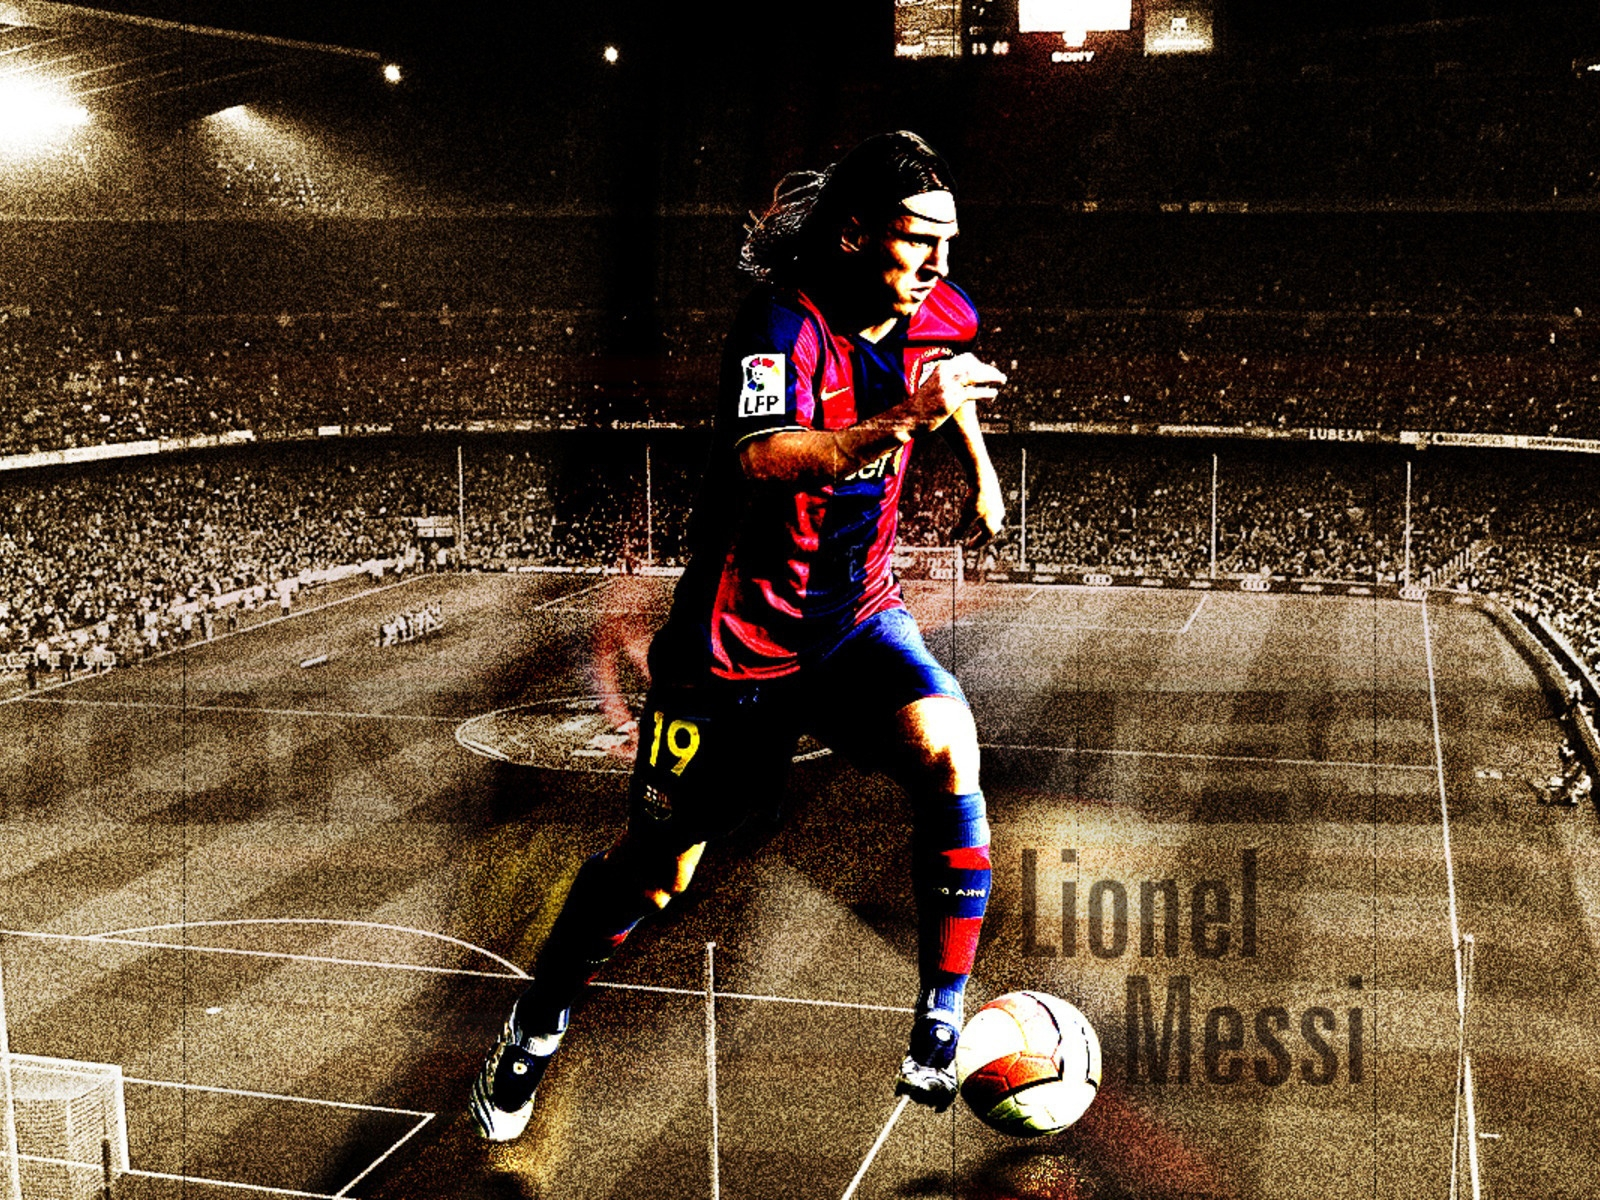 Lionel Messi Barcelona Fan Art for 1600 x 1200 resolution